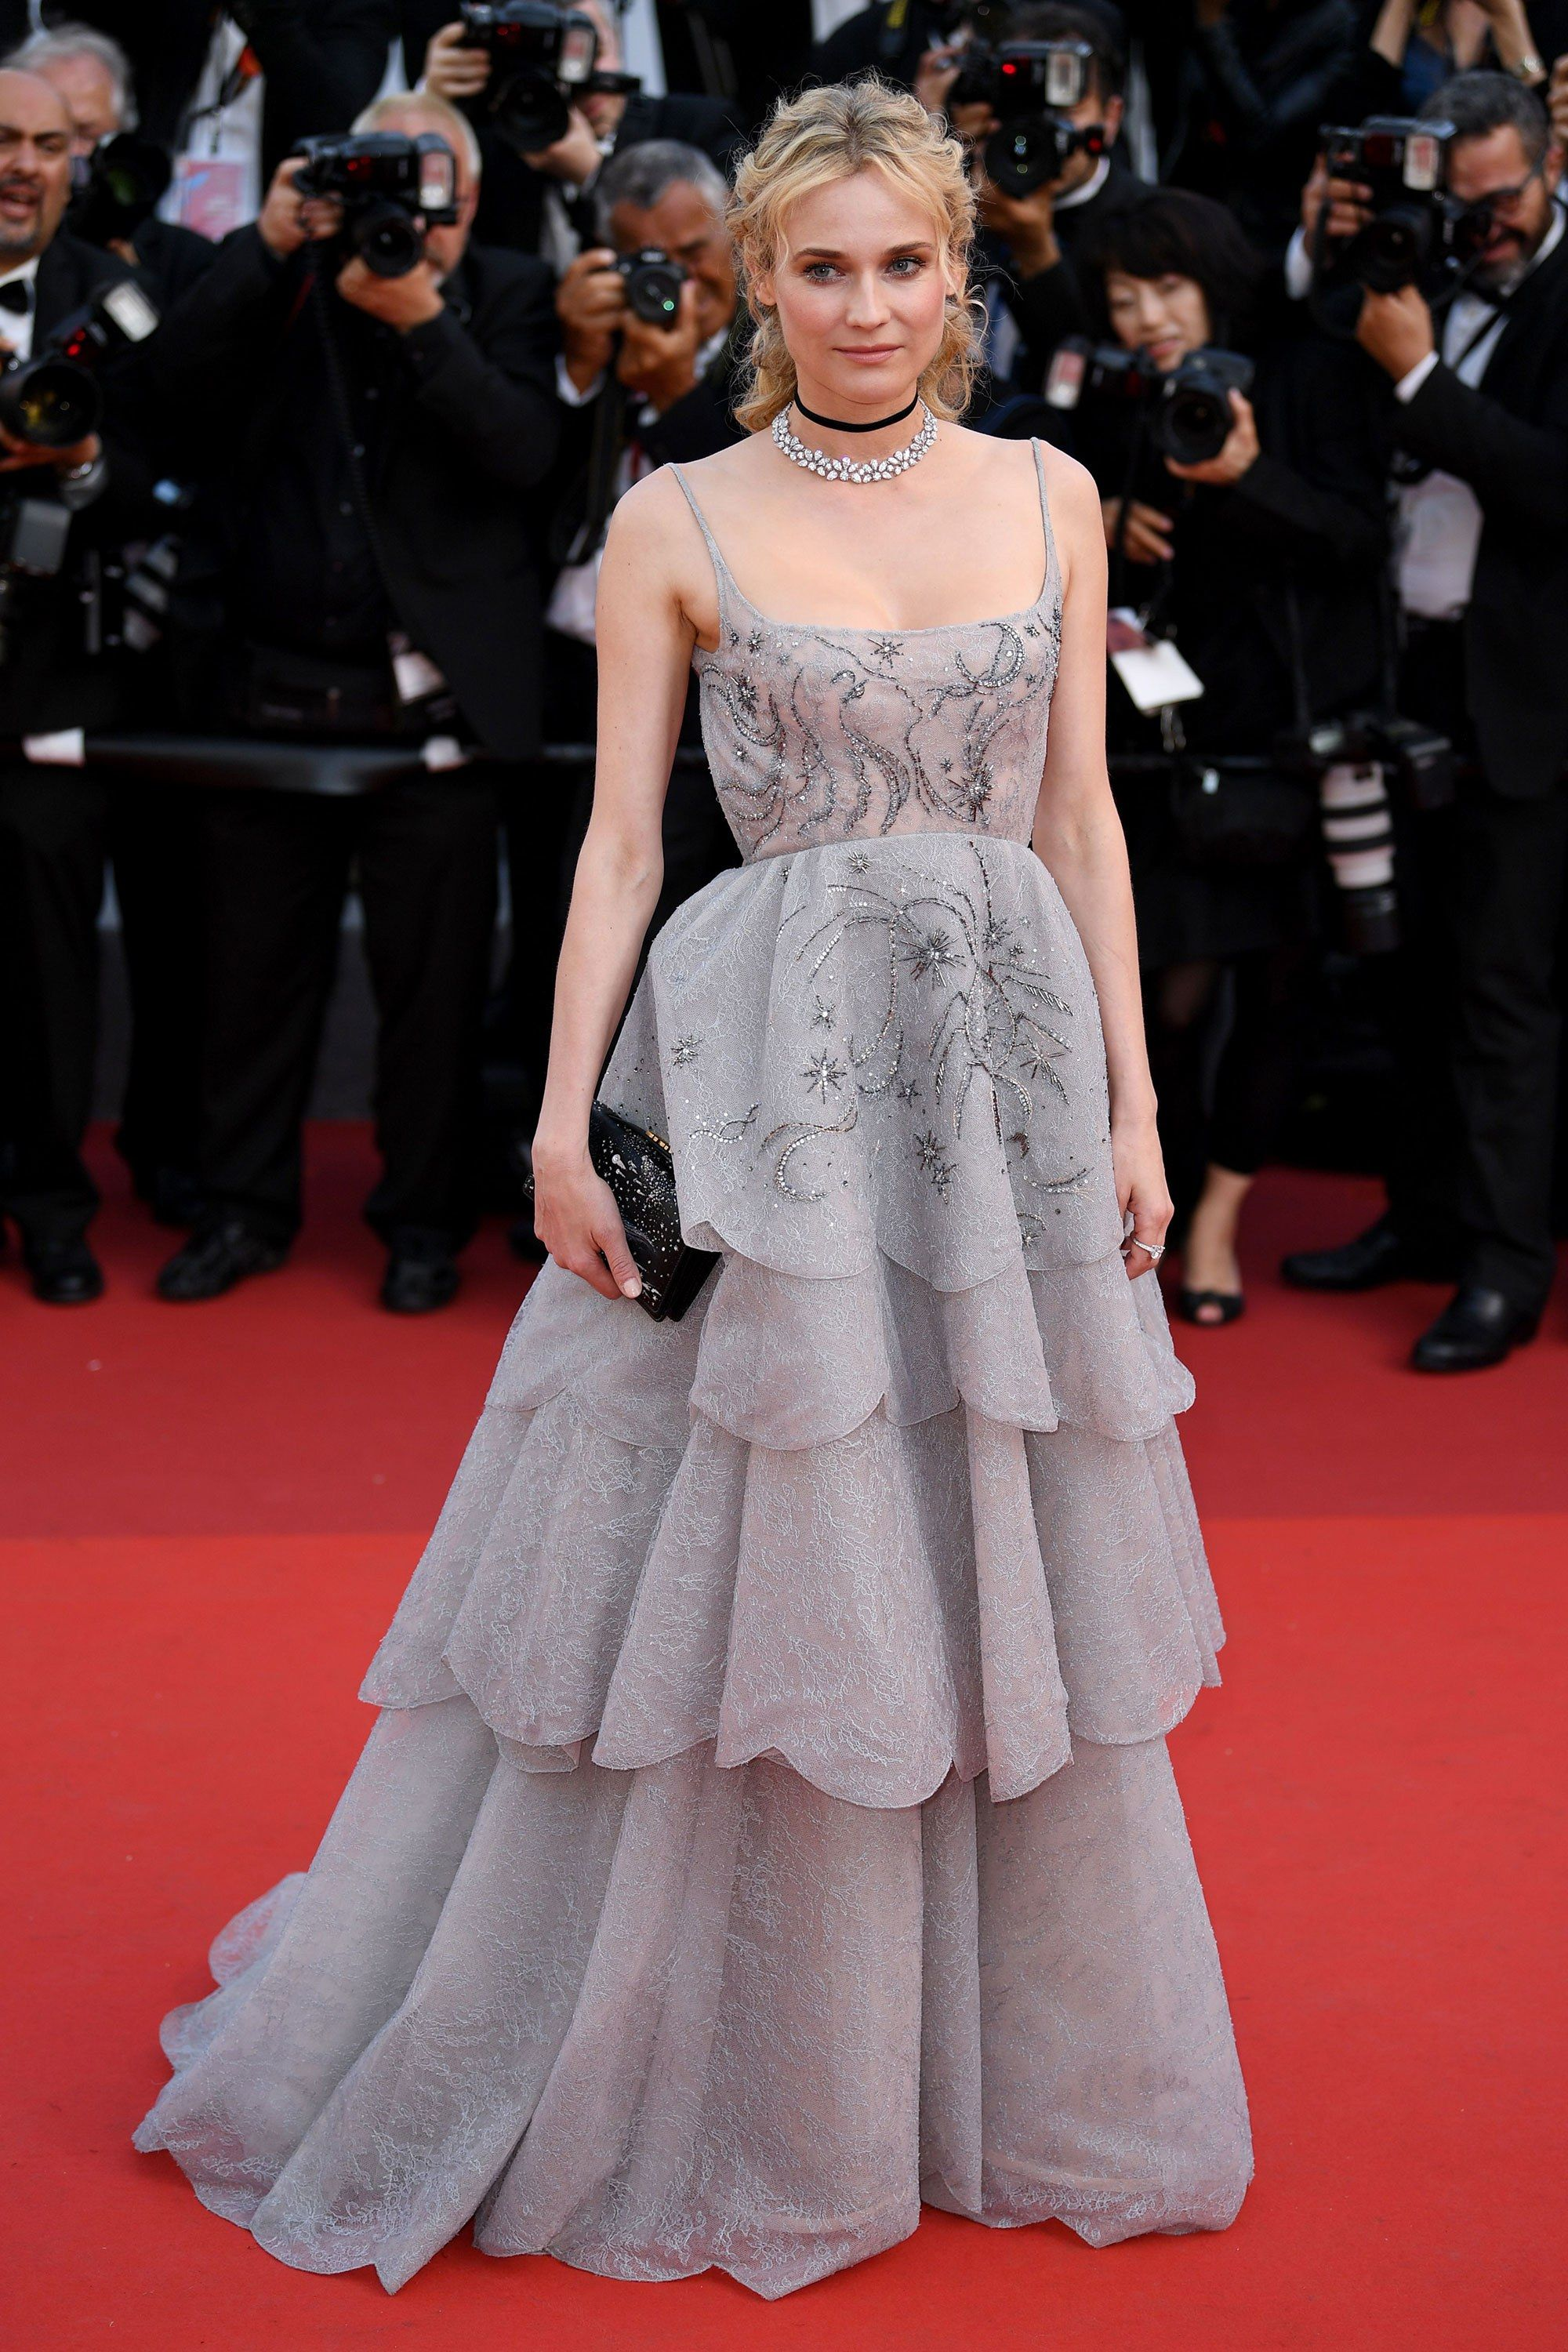 6 International Style Stars Who Stole the Show at Cannes a03d7af9fad0